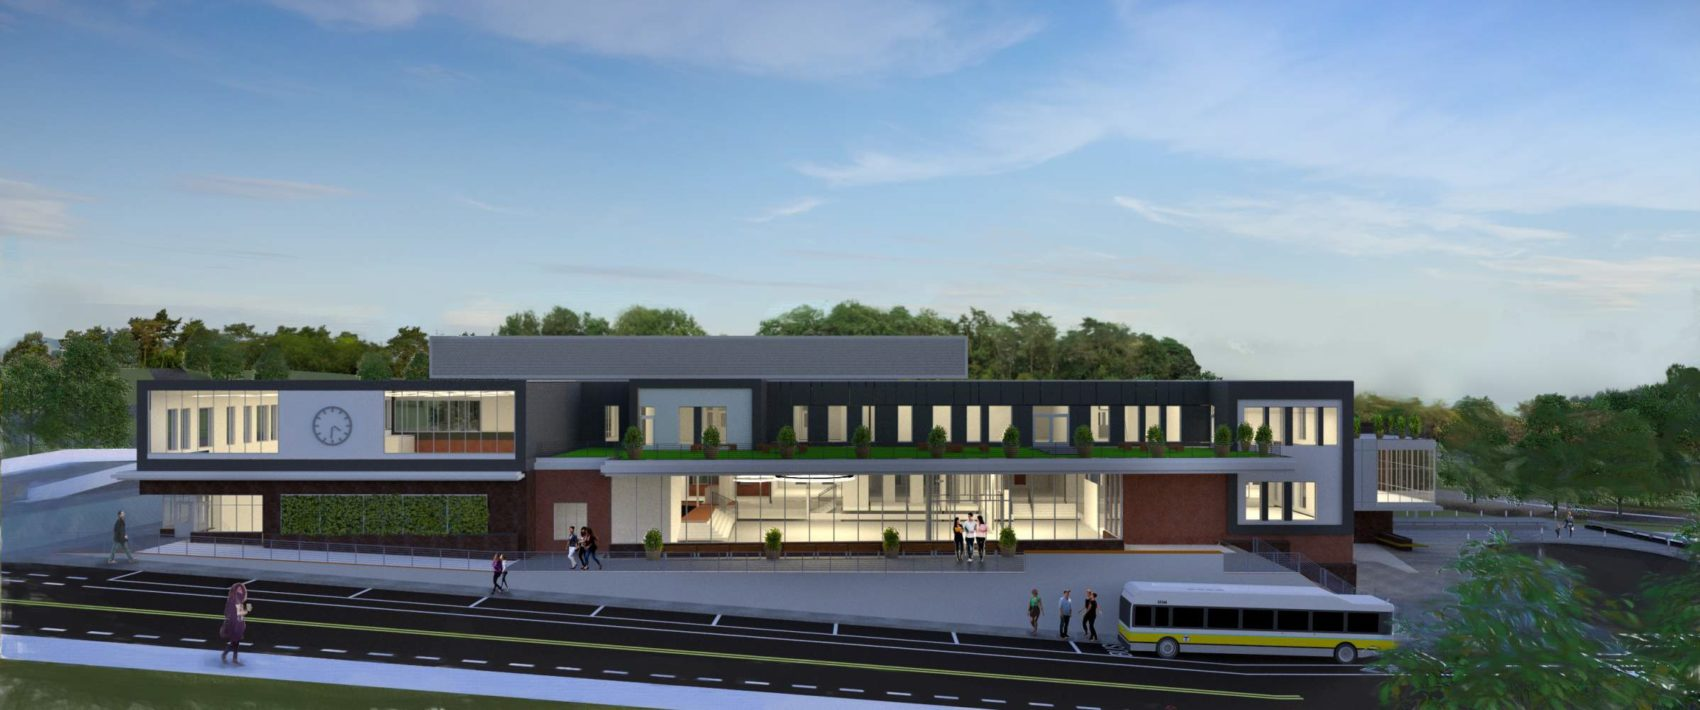 A rendering of the revised, smaller proposal for the new Roxbury Prep High School (Courtesy of Symmes Maini & McKee Associates)